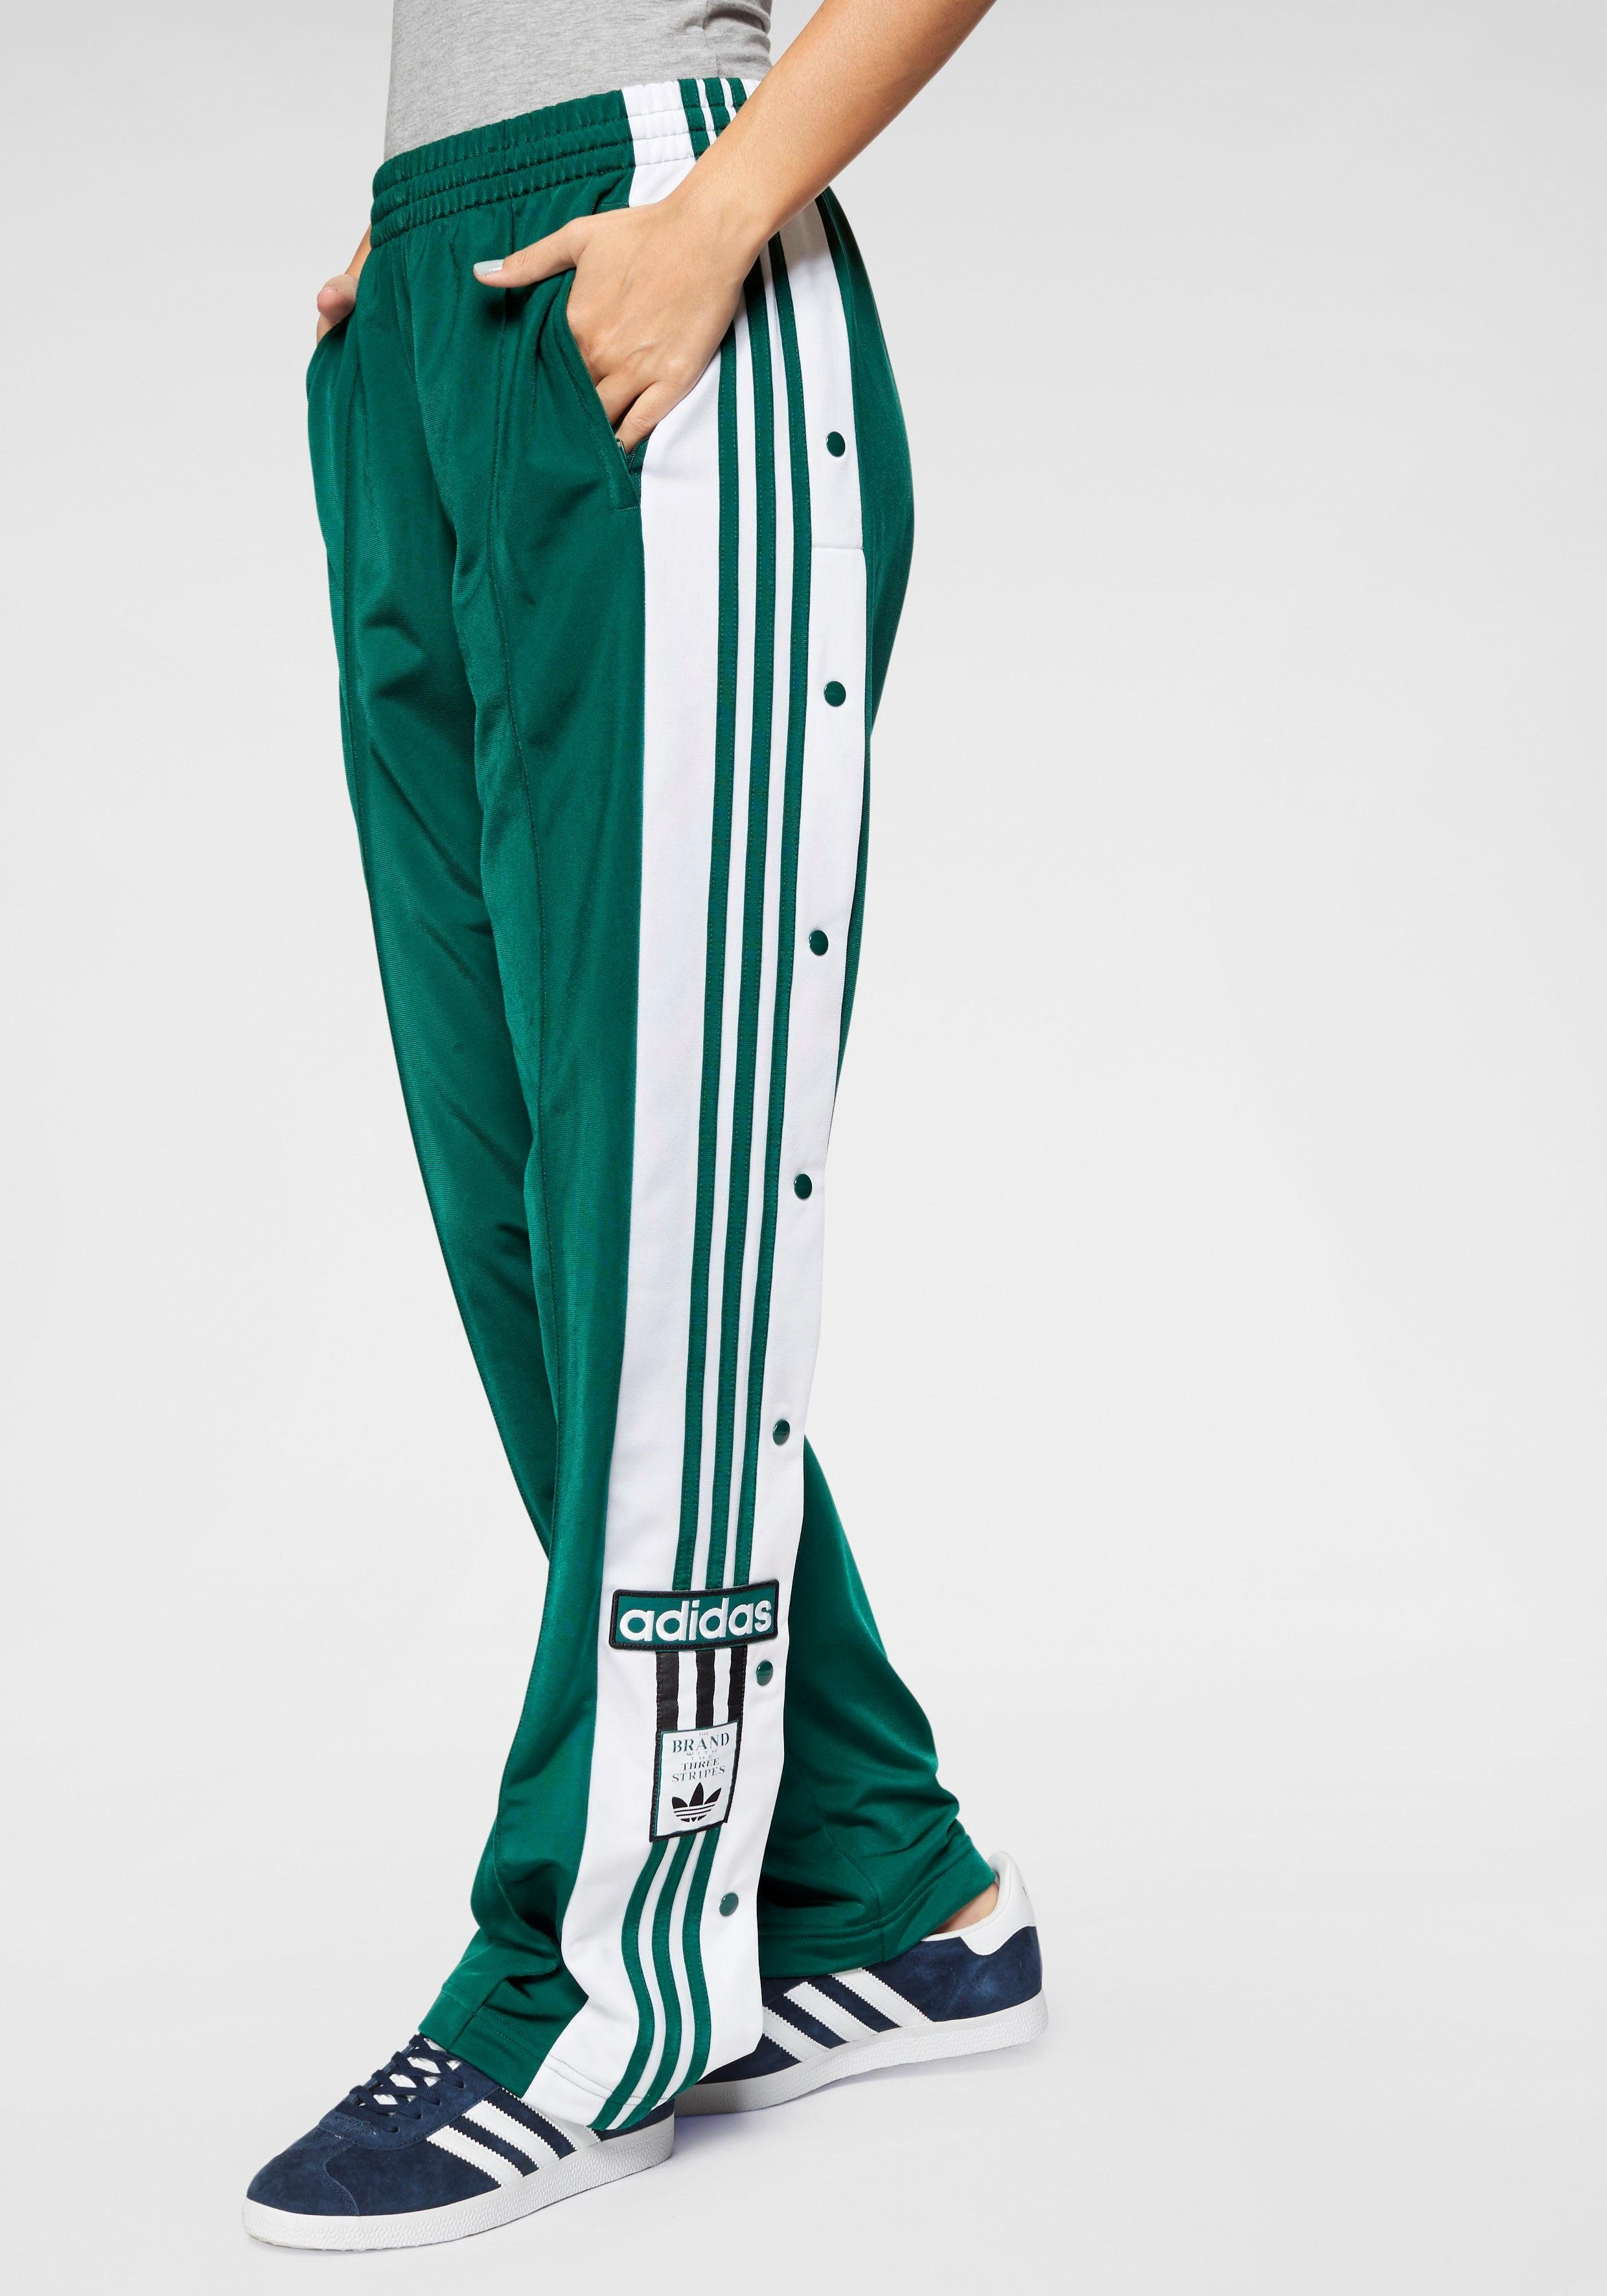 adidas Originals Trainingshose »ADIBREAK PANT« | OTTO